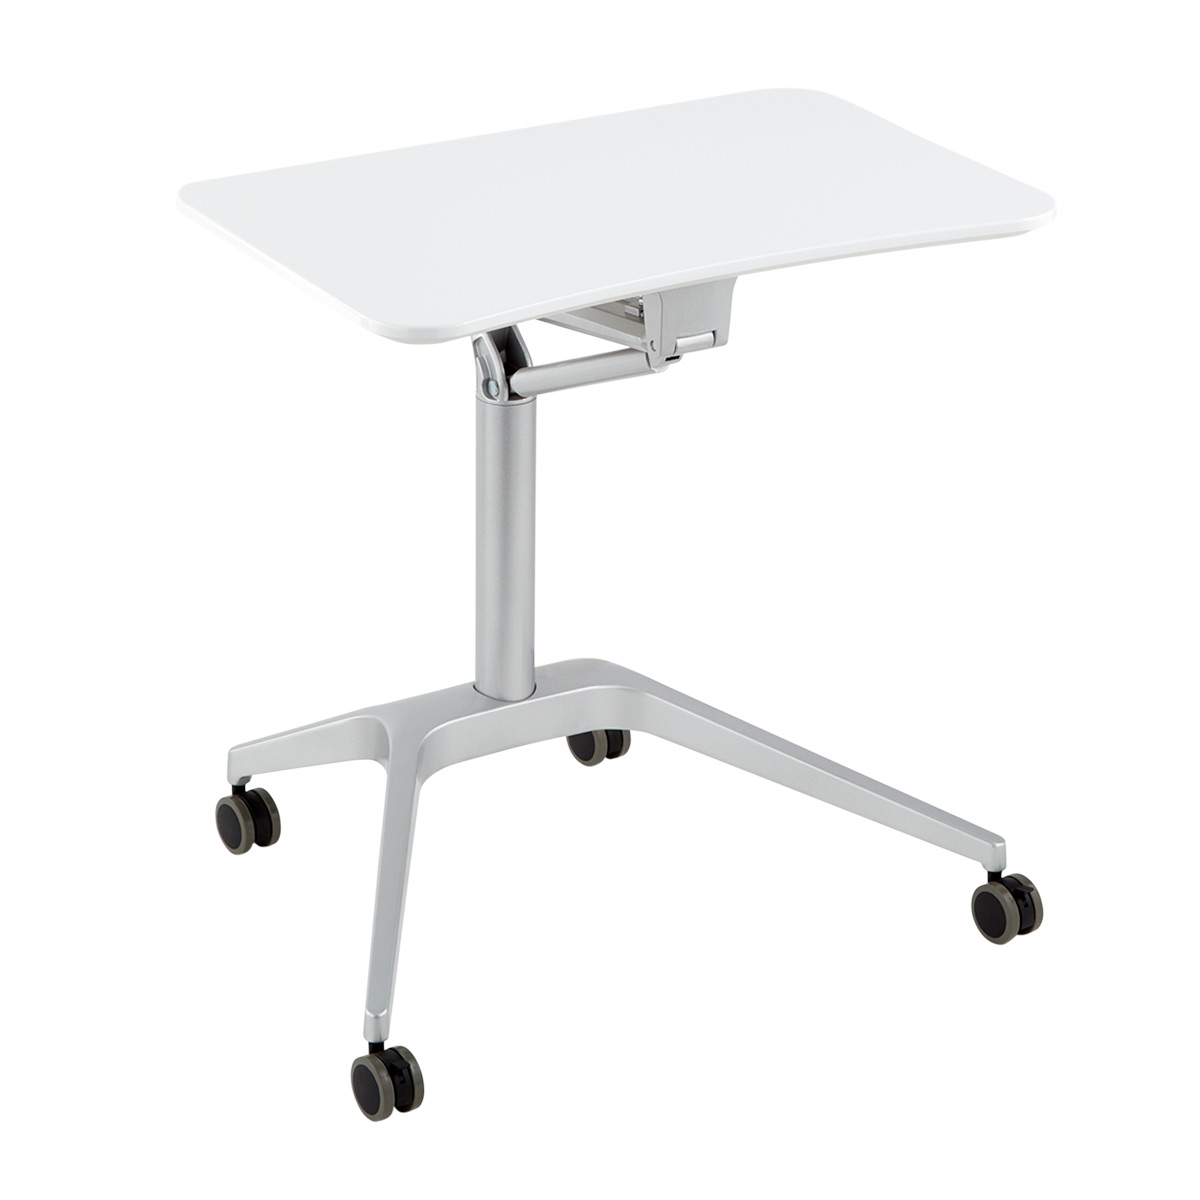 adjustable standing desk the container store rh containerstore com standing desk adjustable amazon standing desk adjustable height